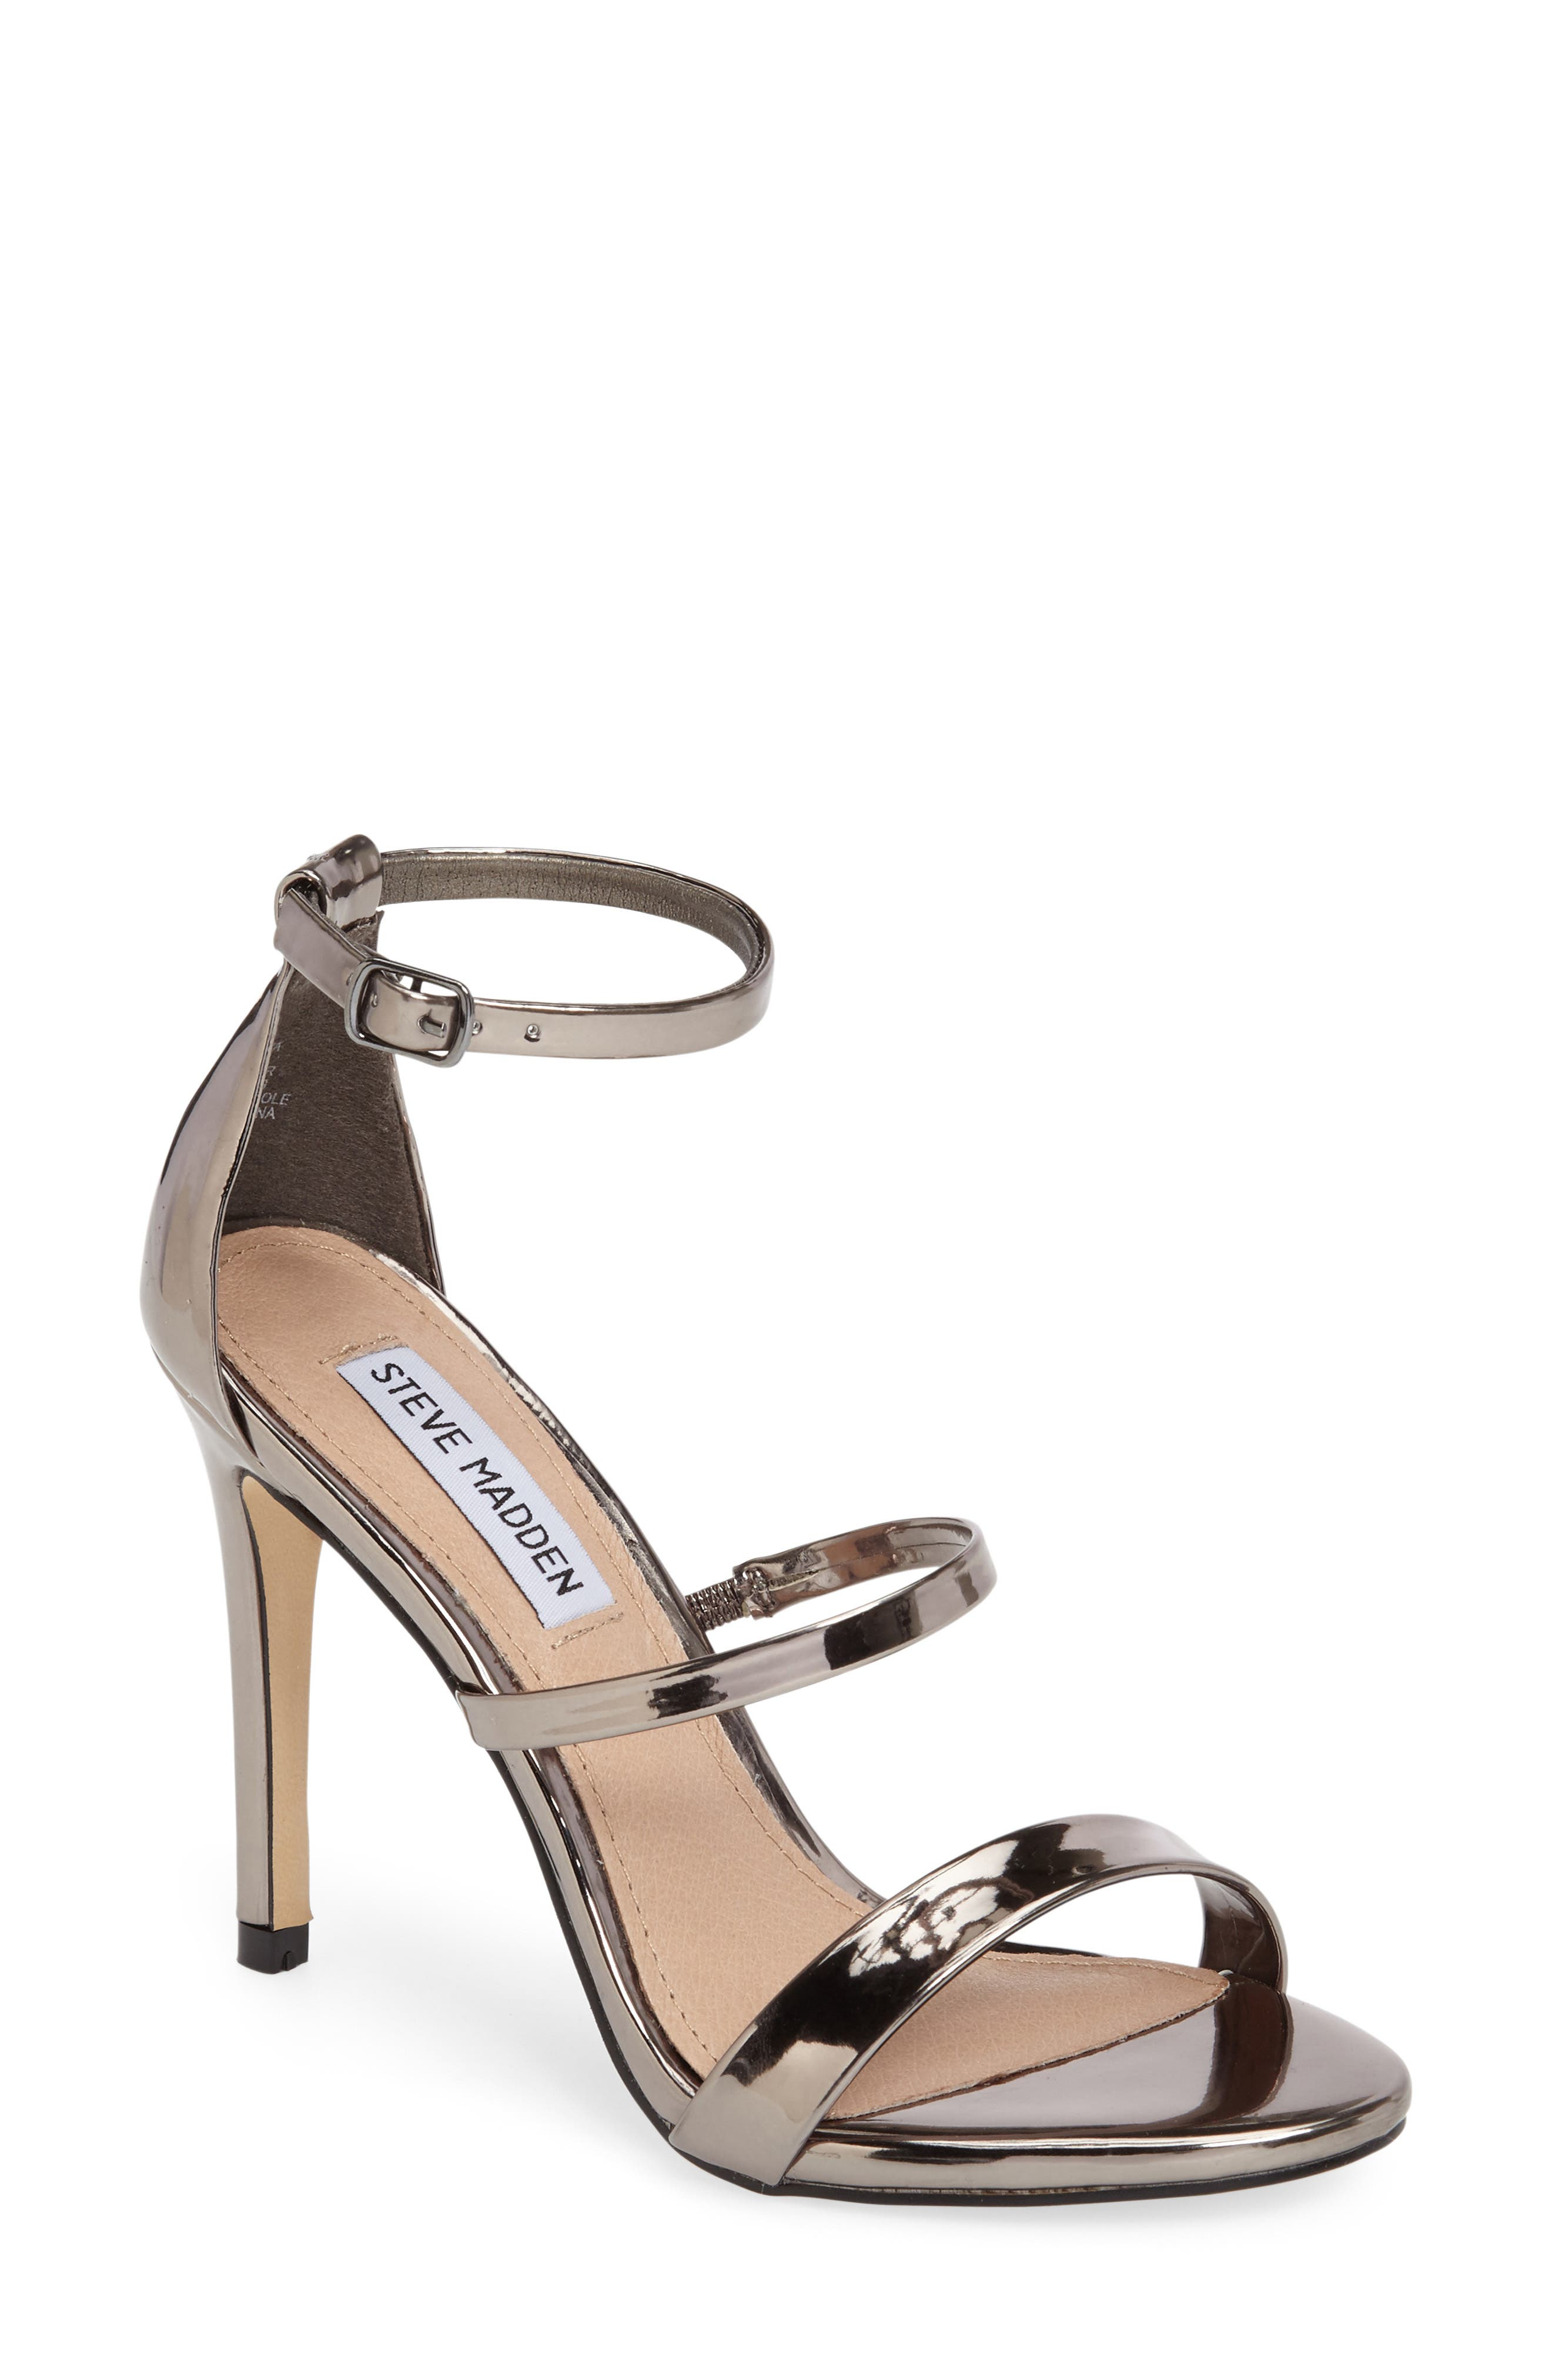 Sheena Strappy Sandal,                             Main thumbnail 1, color,                             Pewter Faux Leather